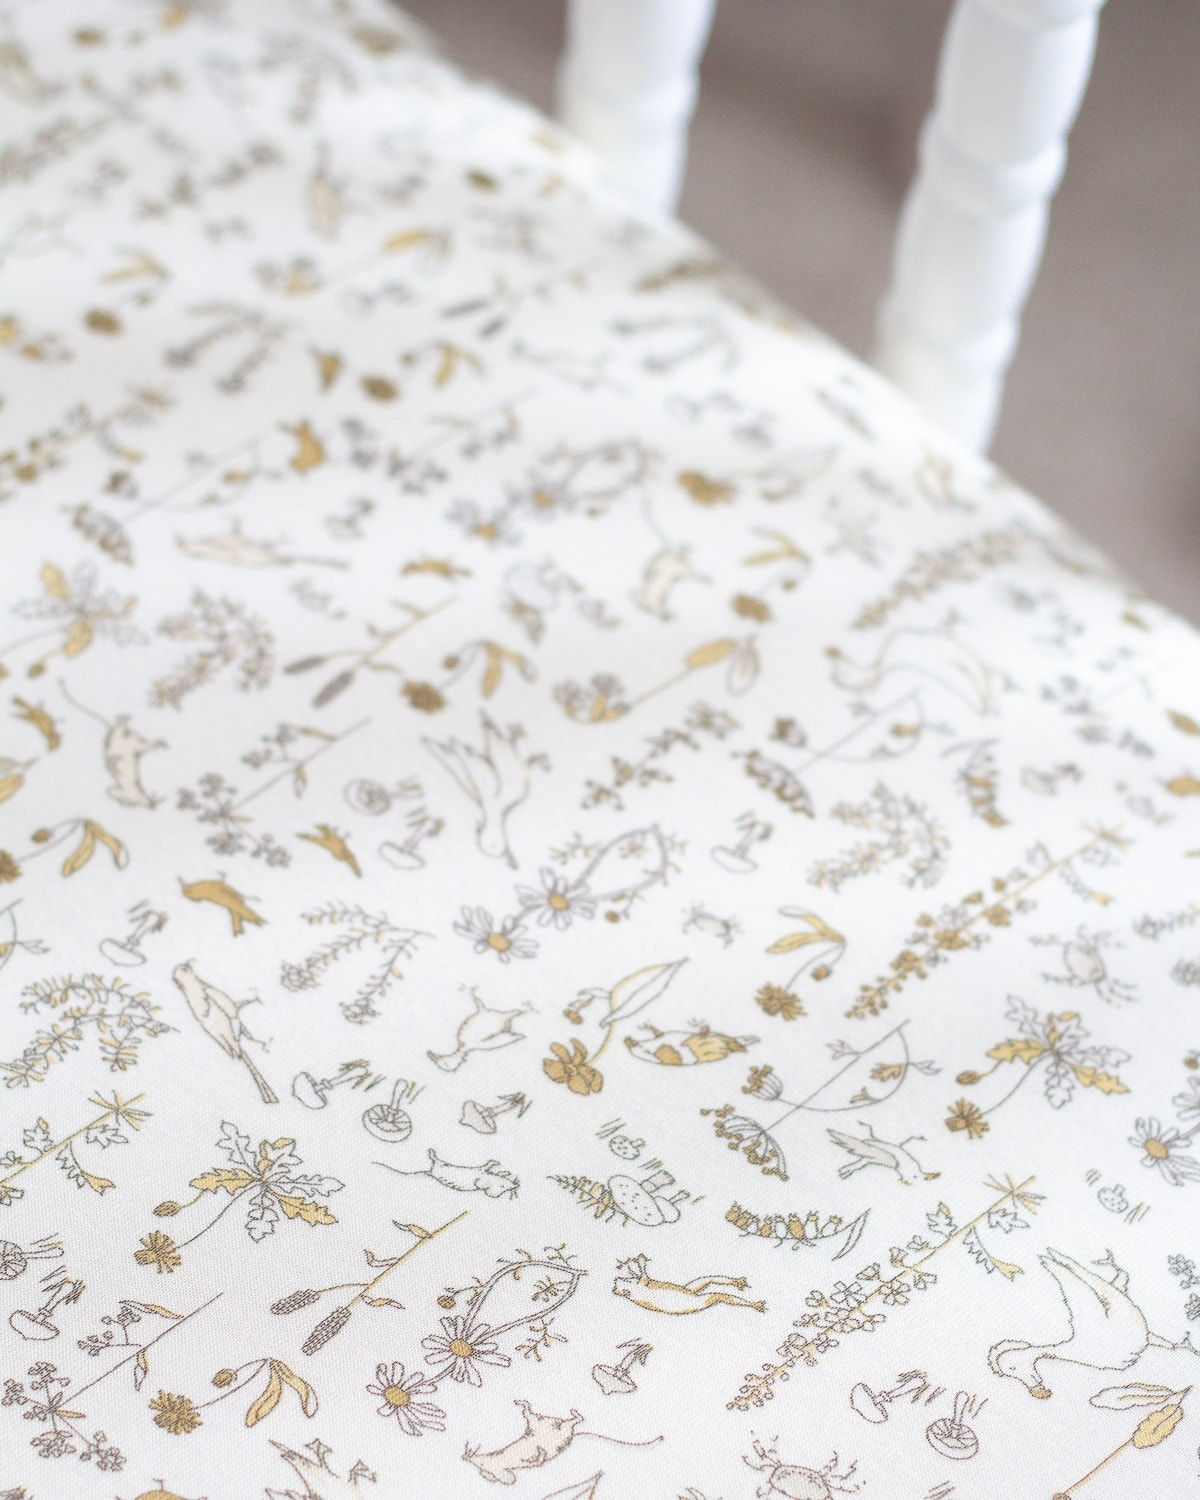 A close up view of a woodland animal patterned crib sheet.